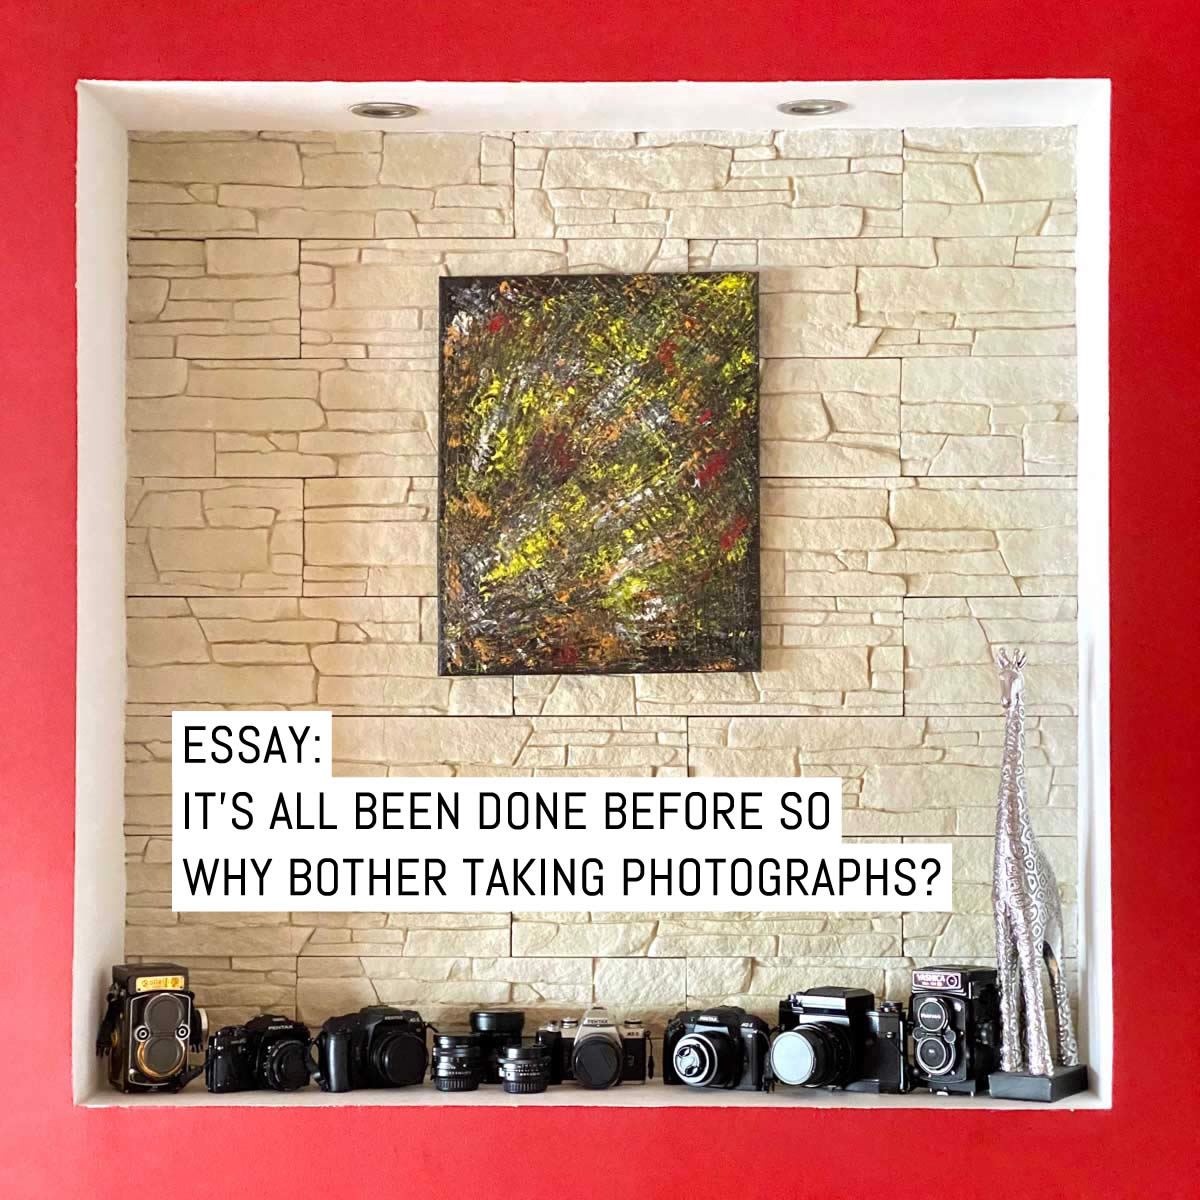 Essay: It's all been done before so why bother taking photographs